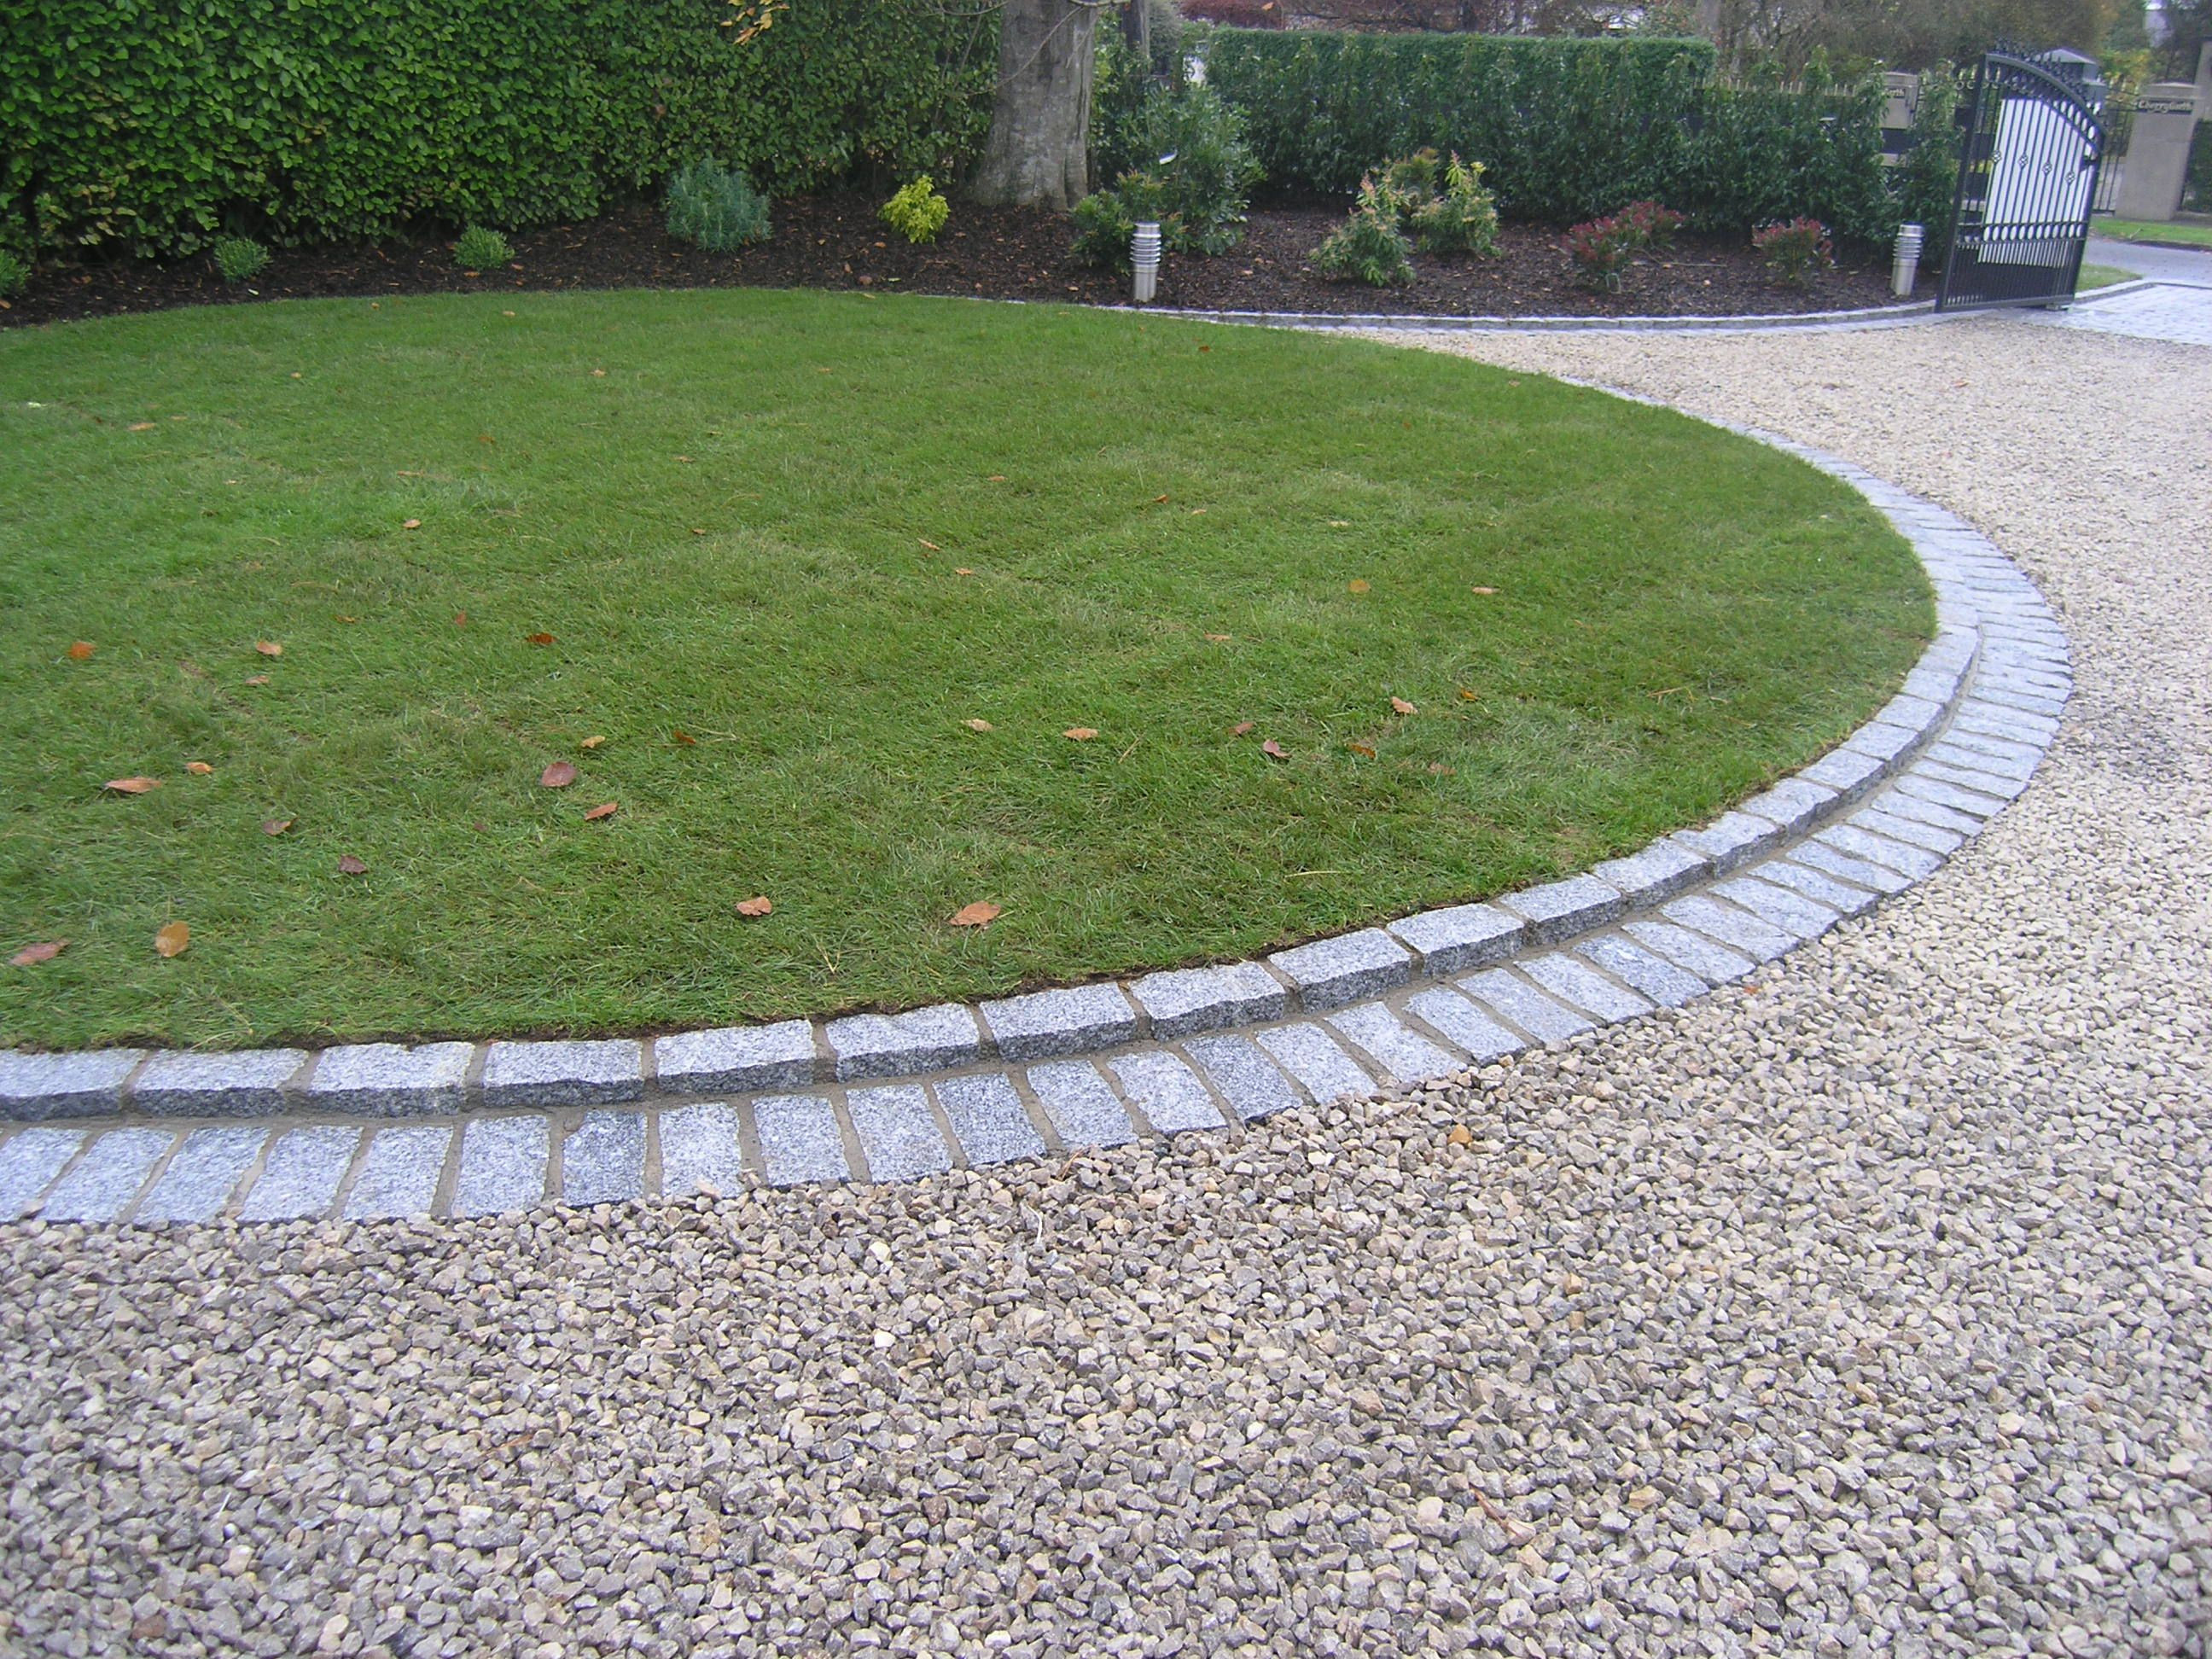 Best ideas about DIY Gravel Driveway . Save or Pin Gravel driveways can be very elegant when edged nicely Now.